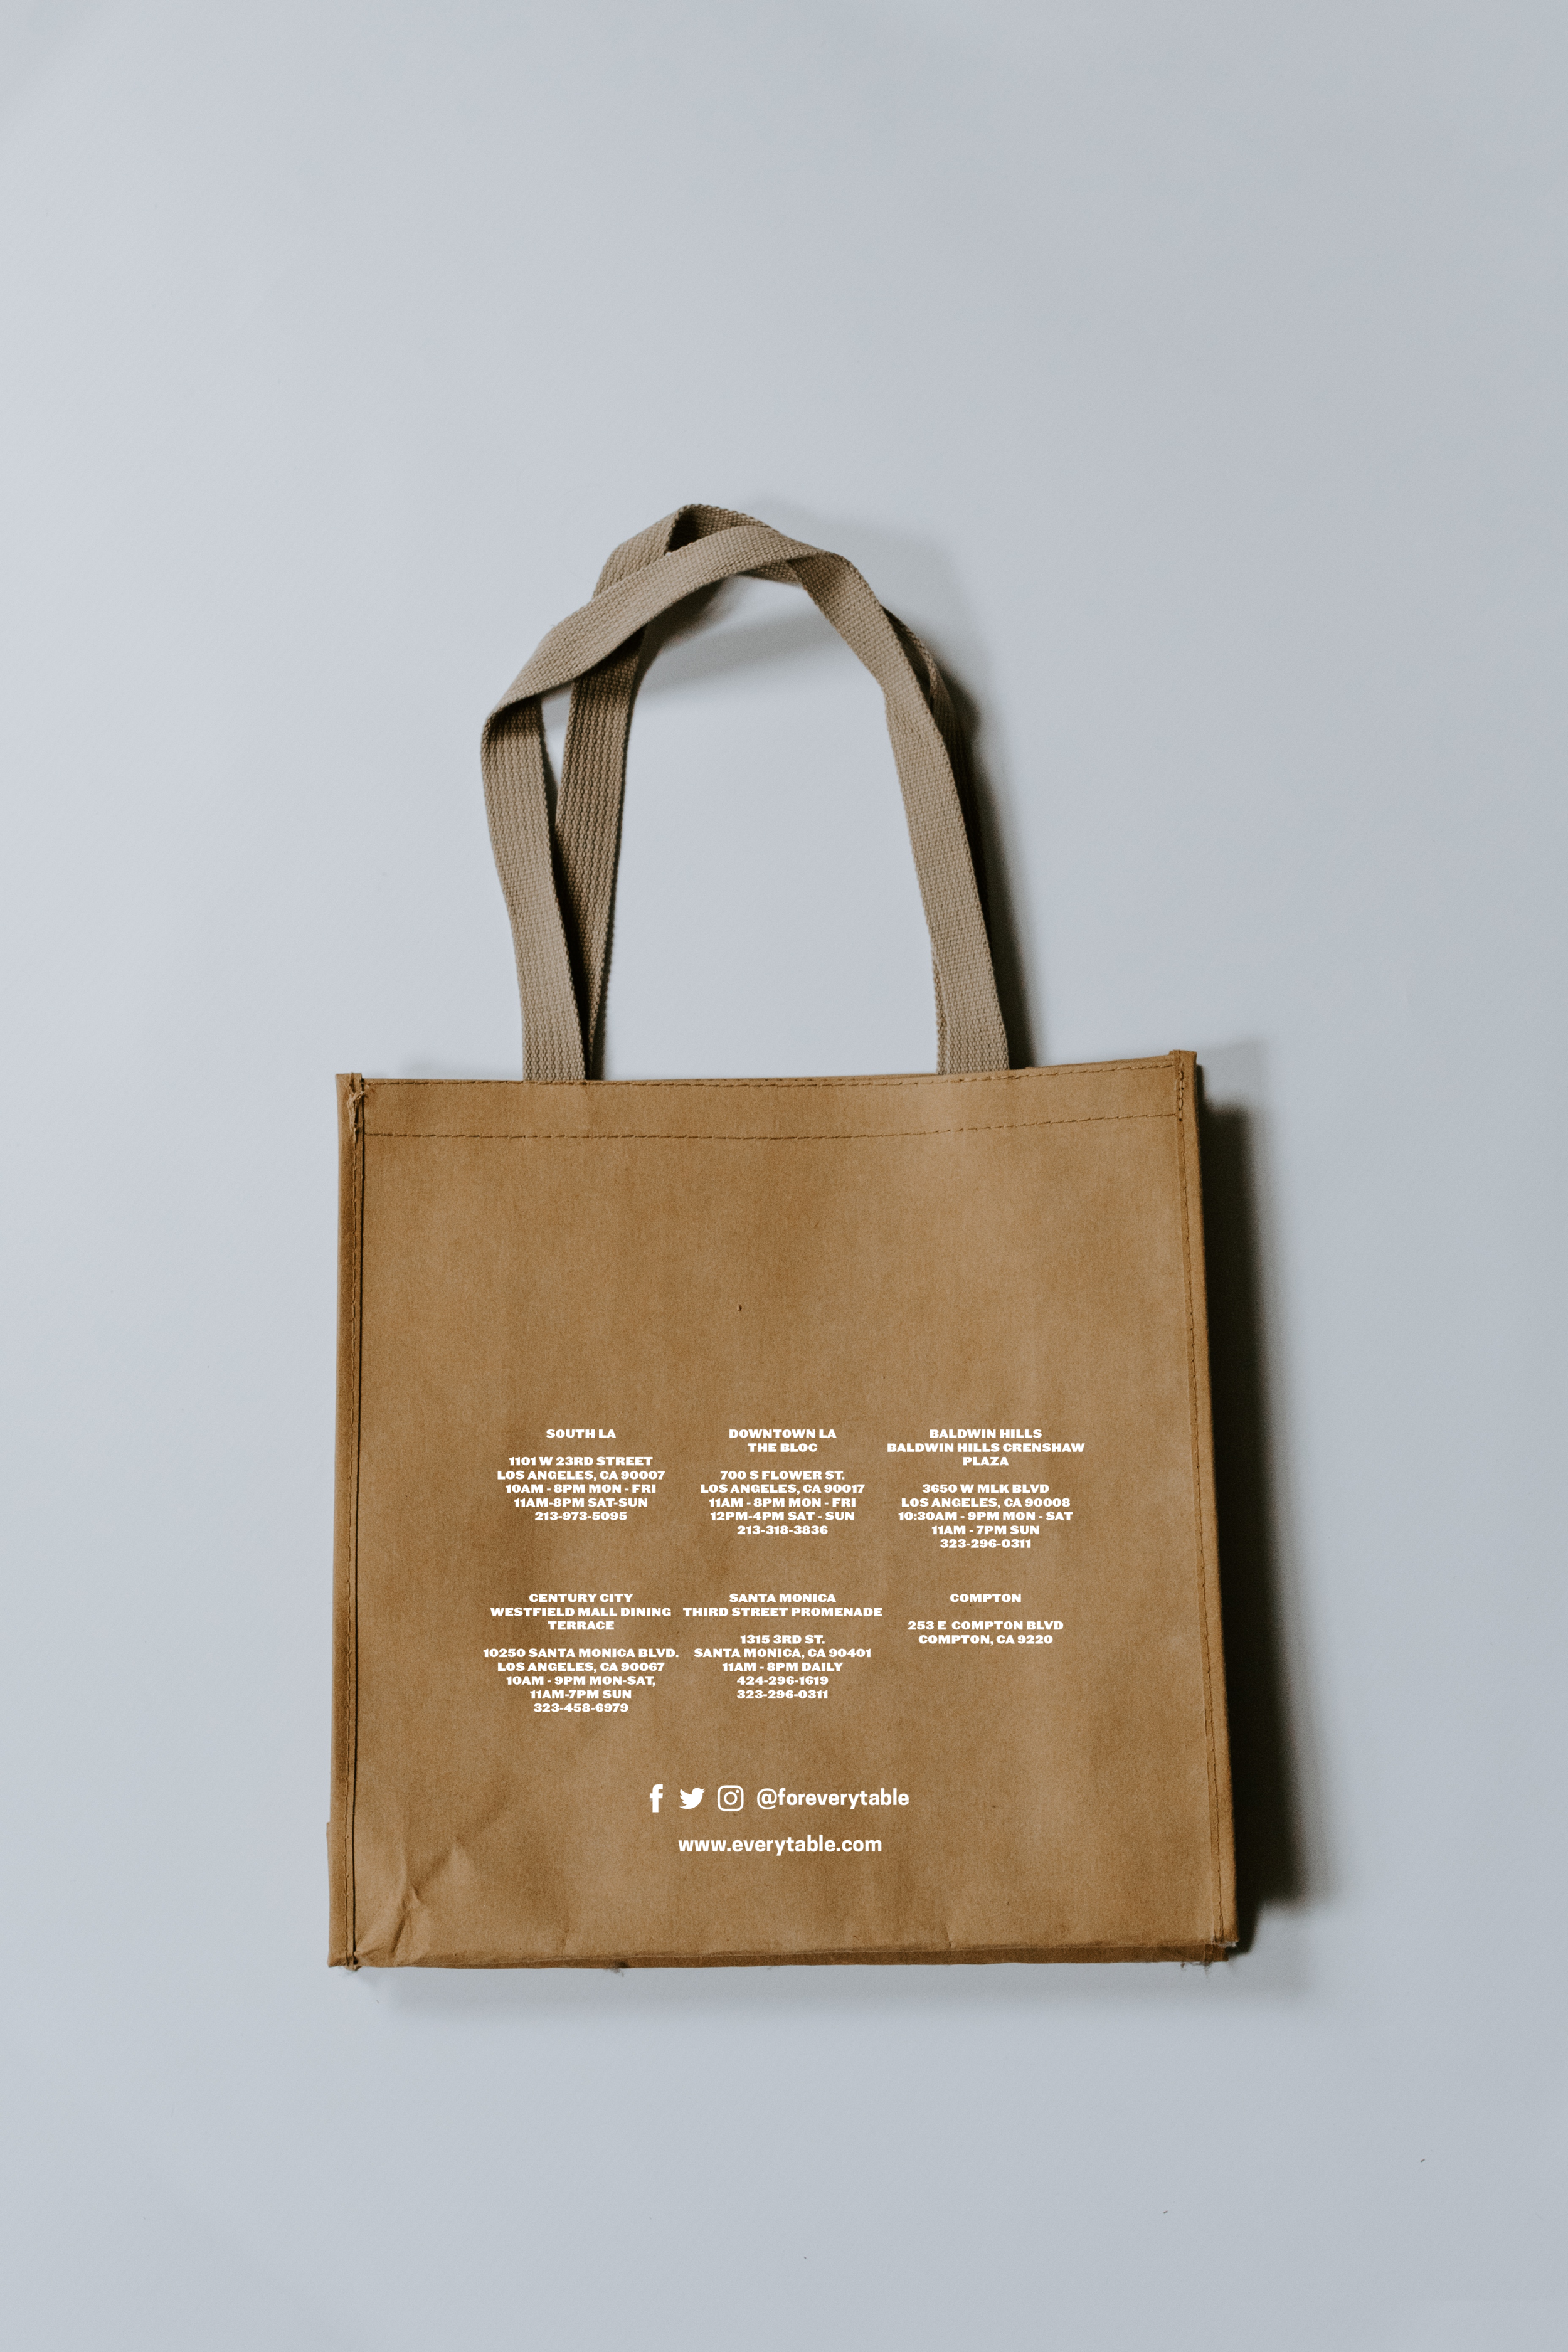 L&CO19-Projects-Everytable-Bag(Back).png